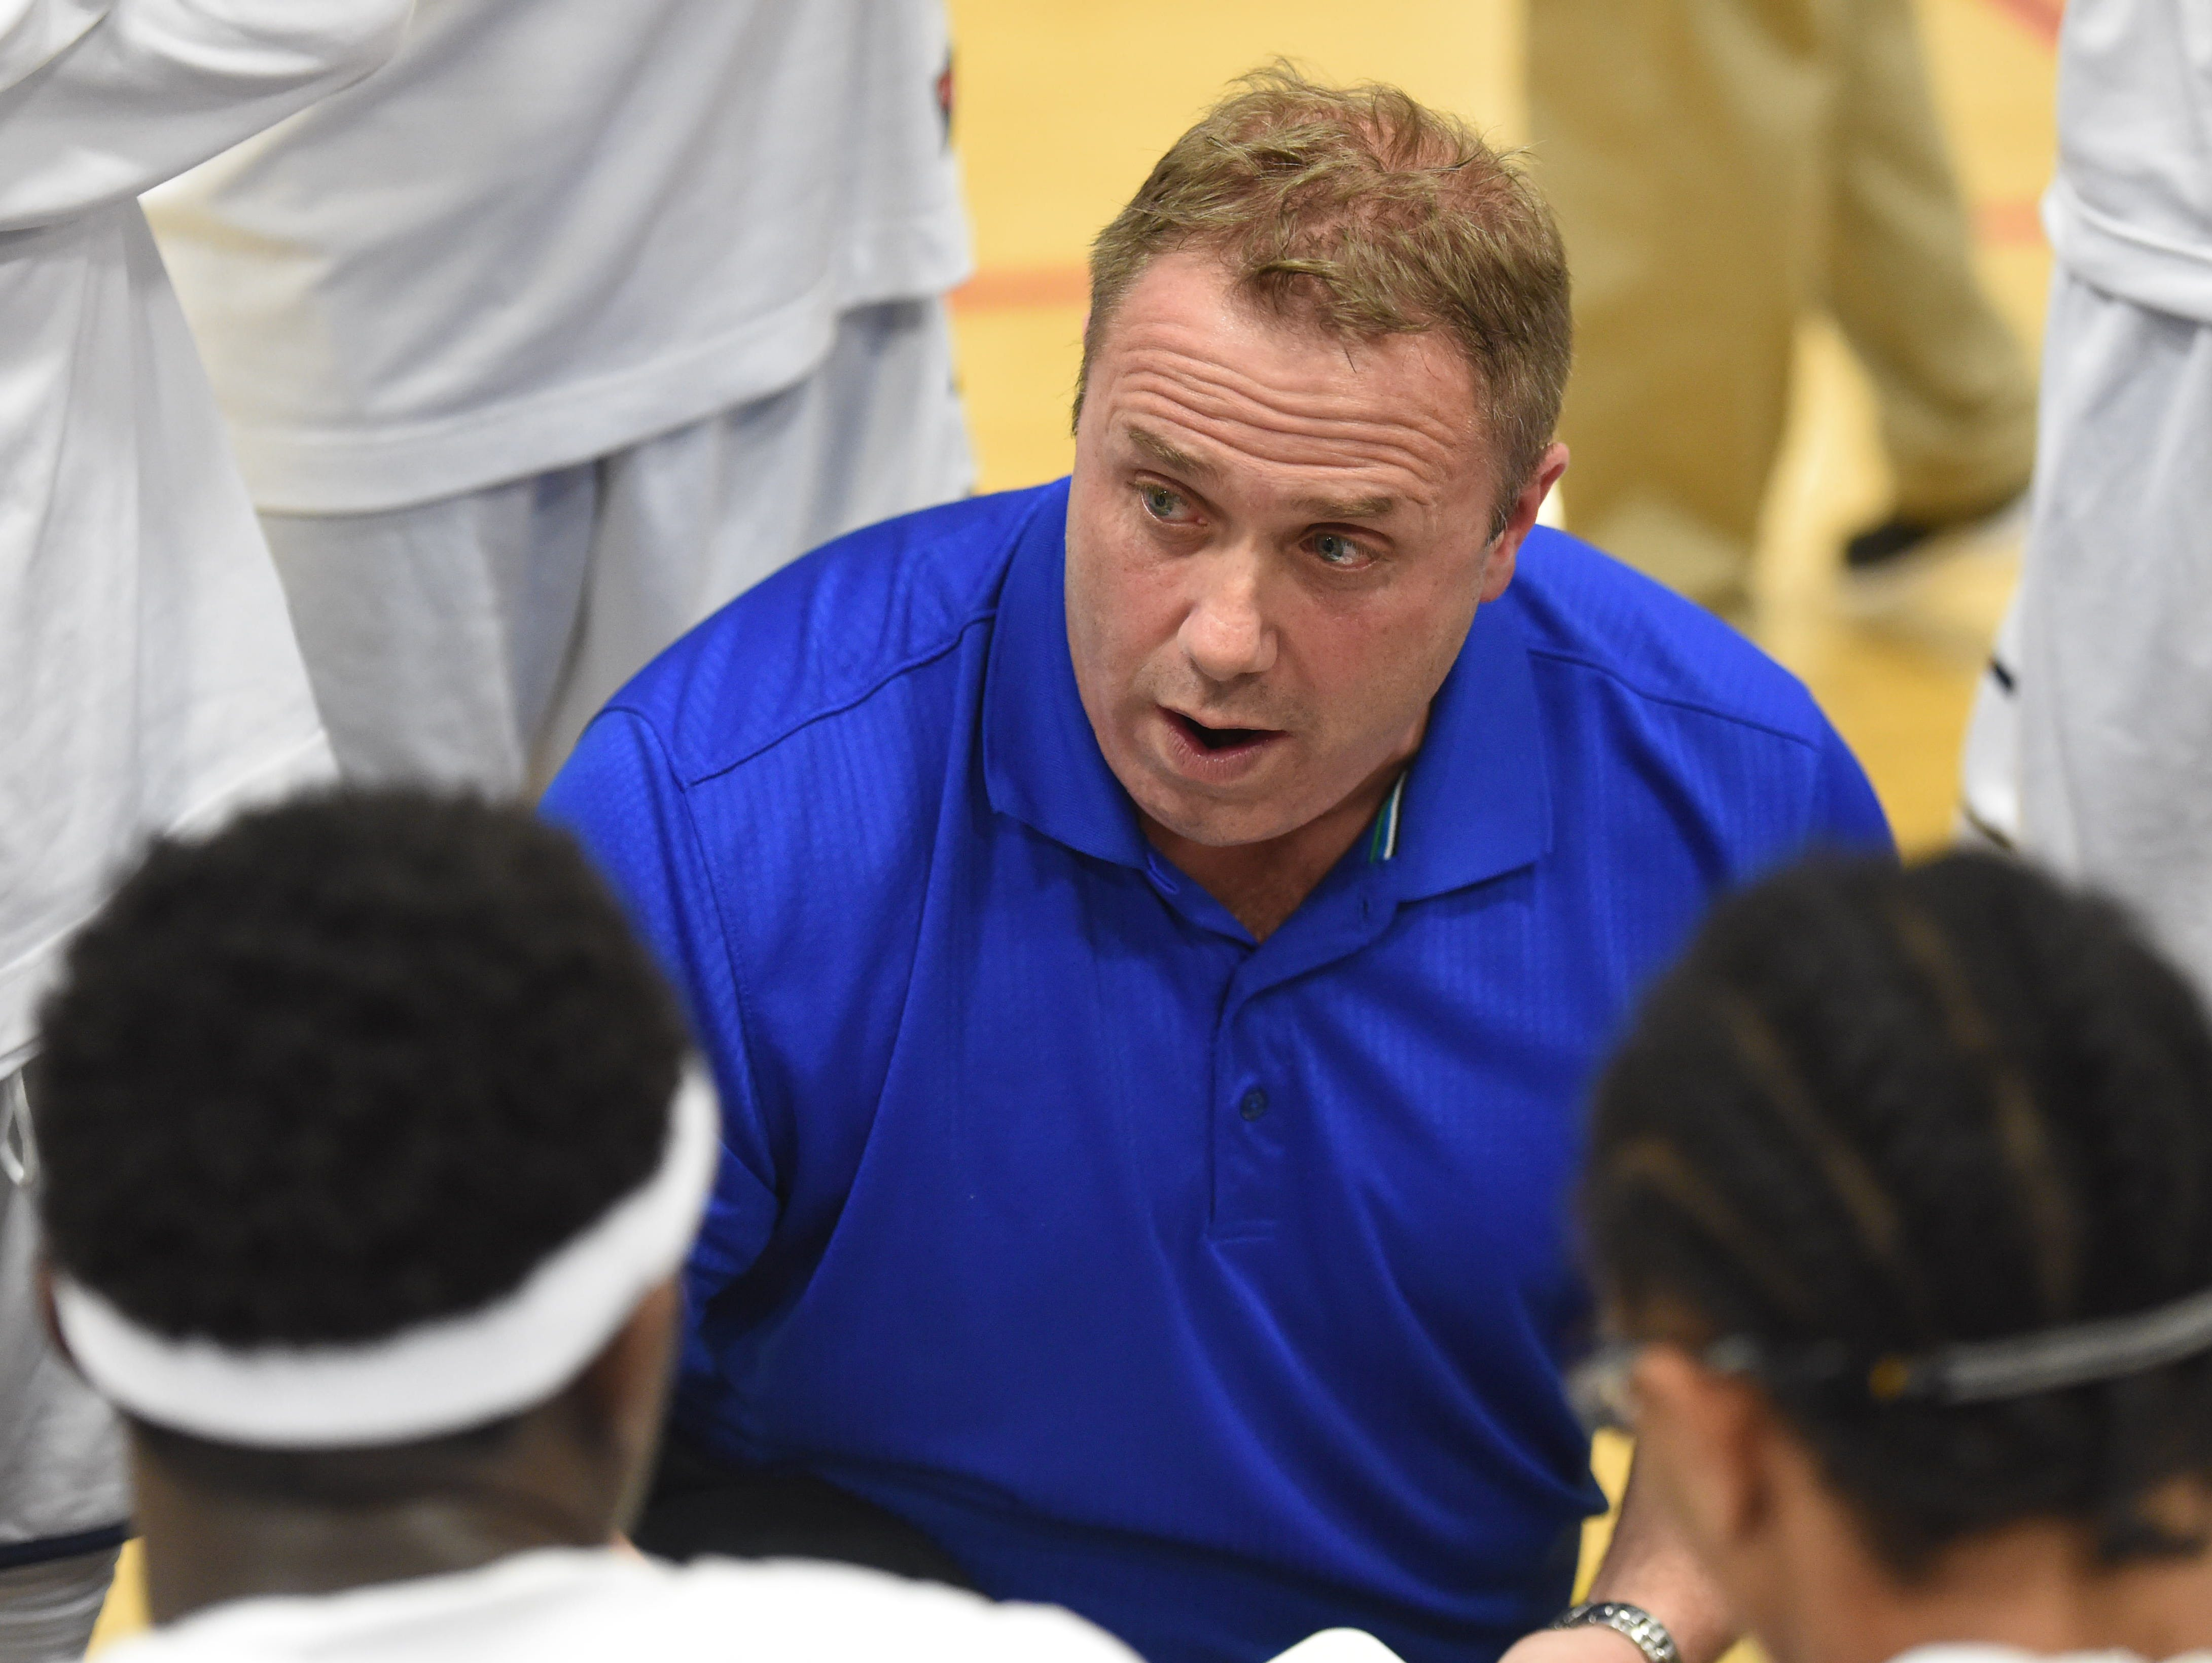 Poughkeepsie High School boys basketball coach Brian Laffin huddles with his team during a game.